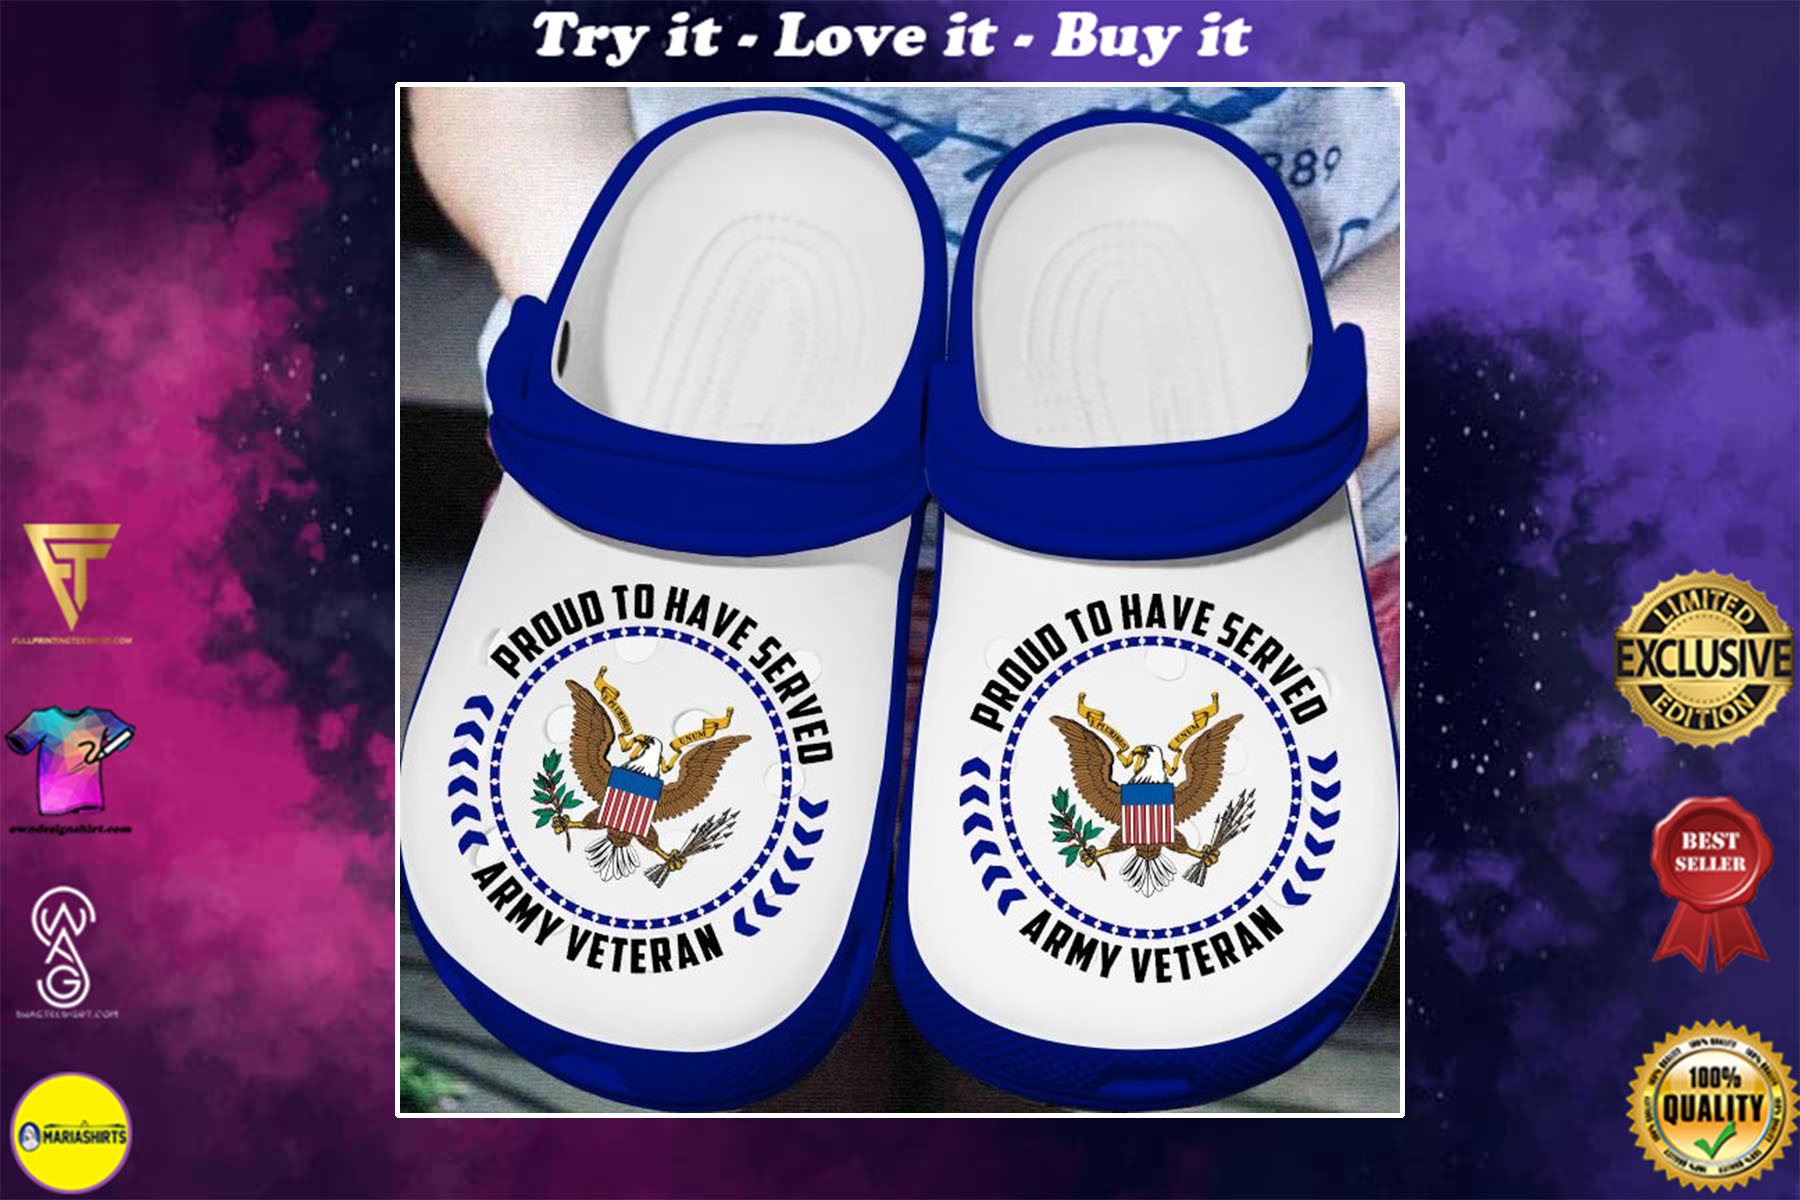 [special edition] proud to have served army veteran crocs shoes - maria